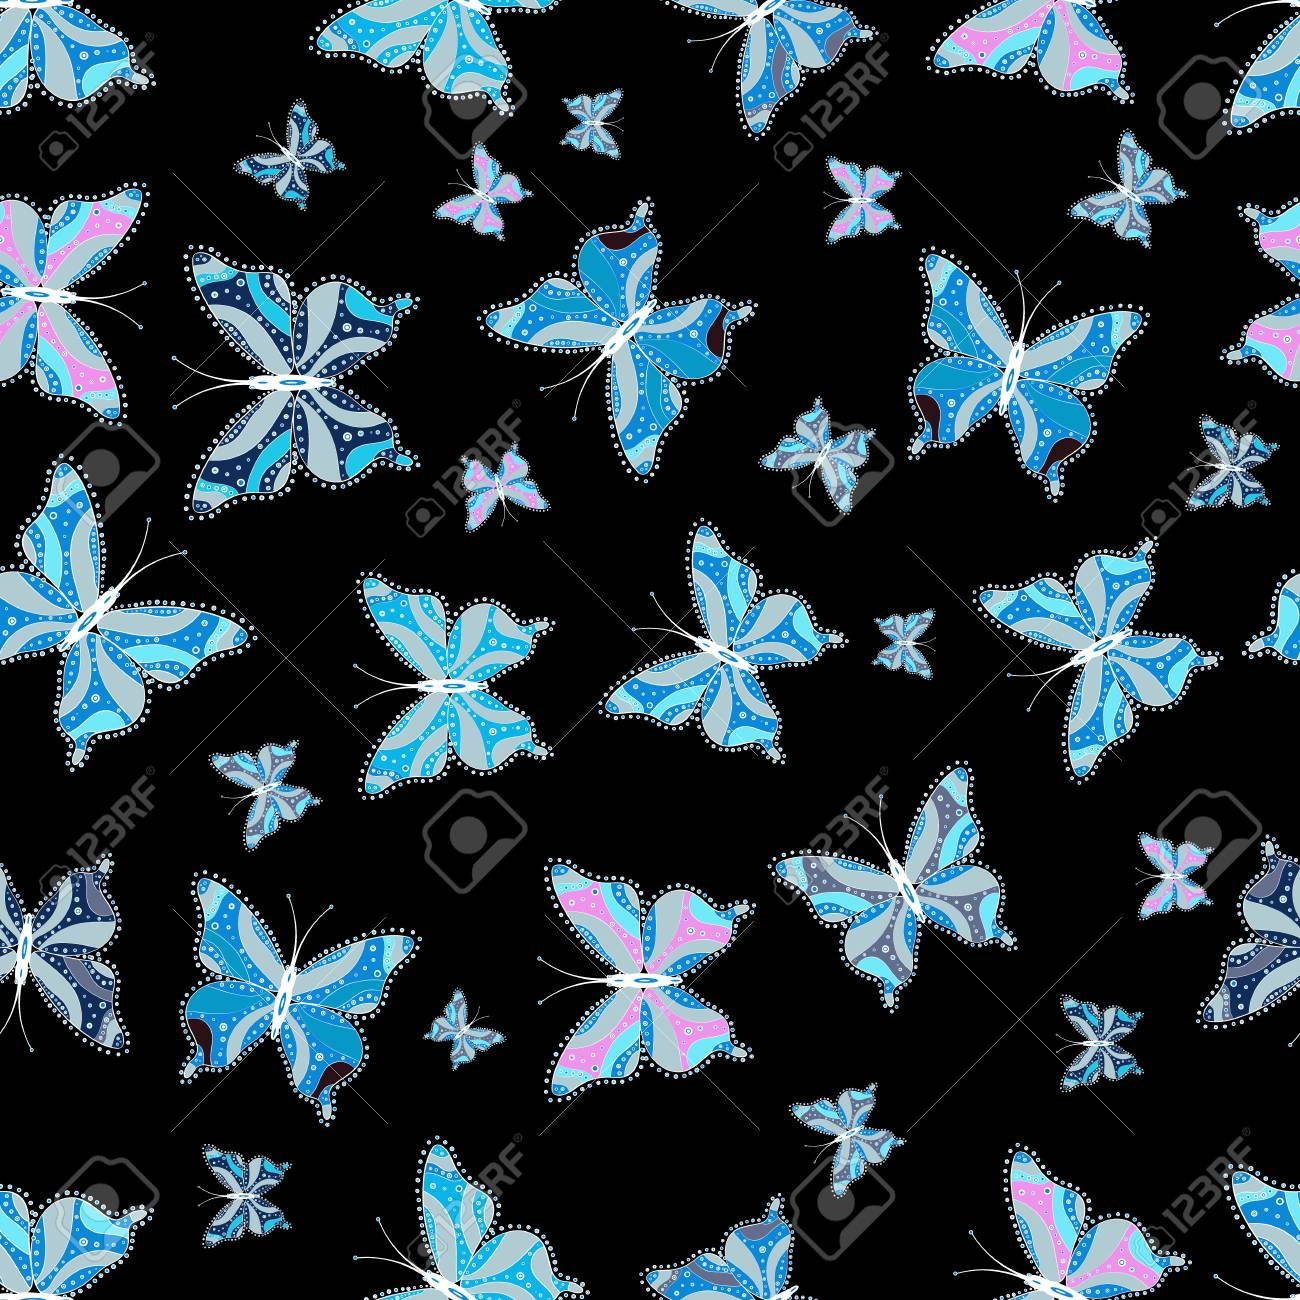 Spring Silhouettes And Shadows >> Suitable For Fabric Paper Packaging Butterfly Shadows And